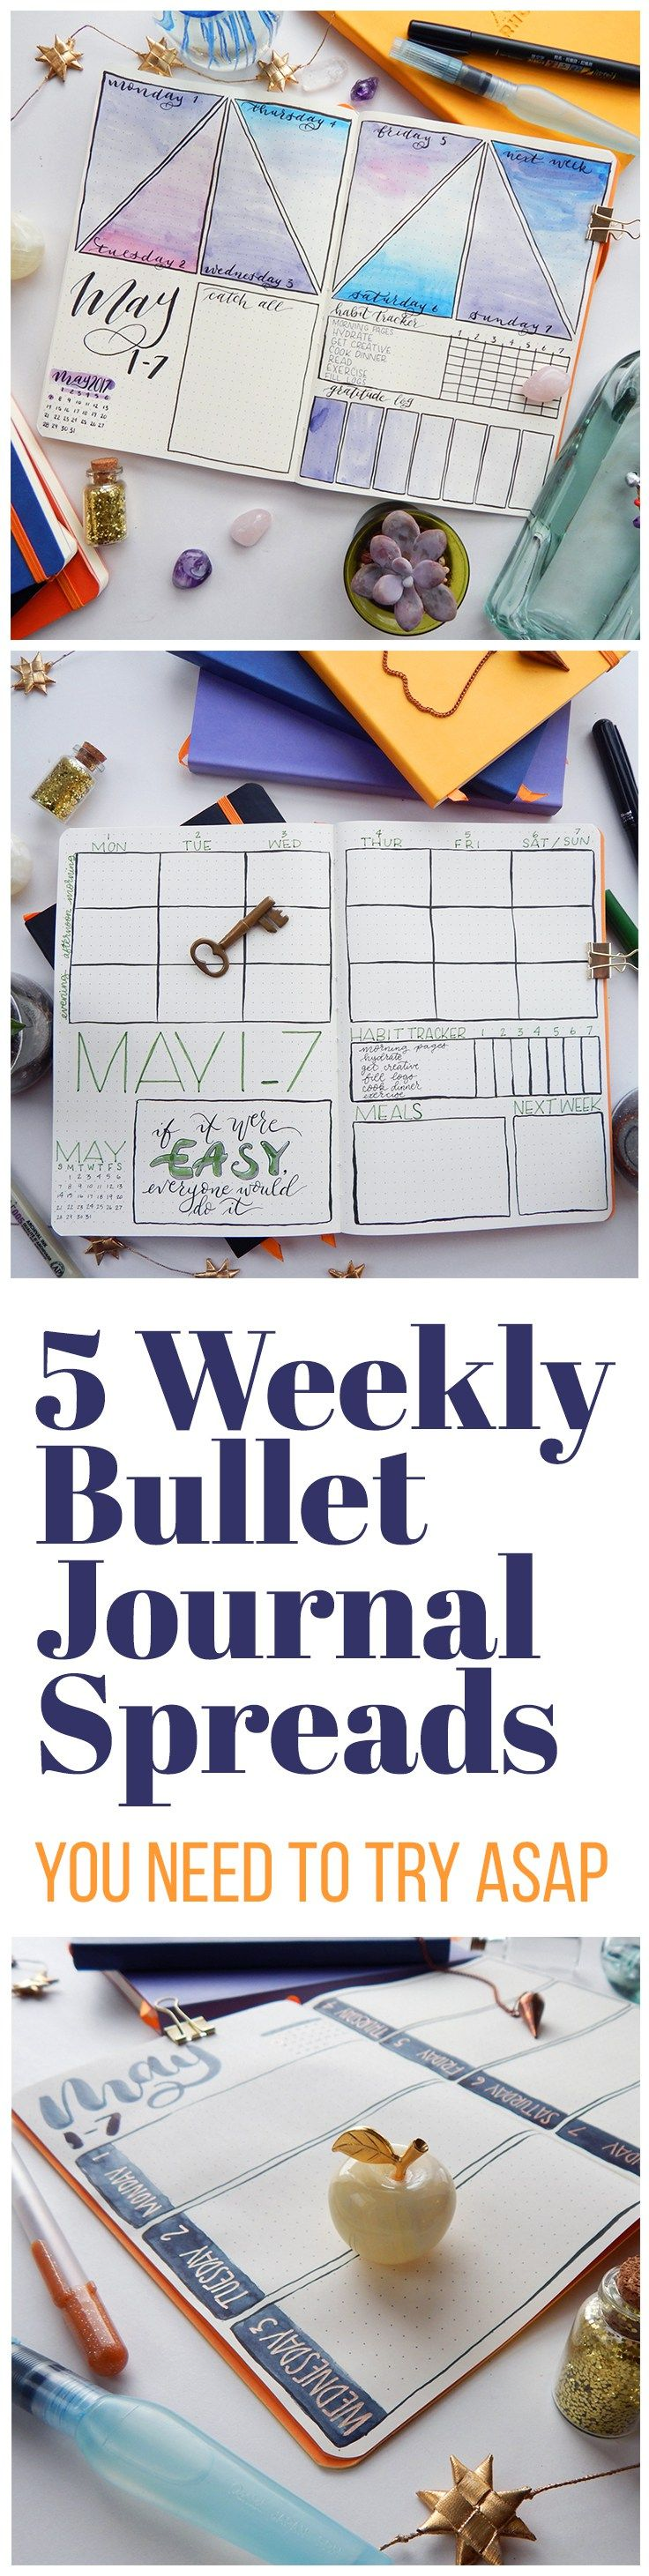 Weekly bullet journal spreads can be extremely useful layouts. Here are 5 to get your creative juices flowing and your planner brain ticking!